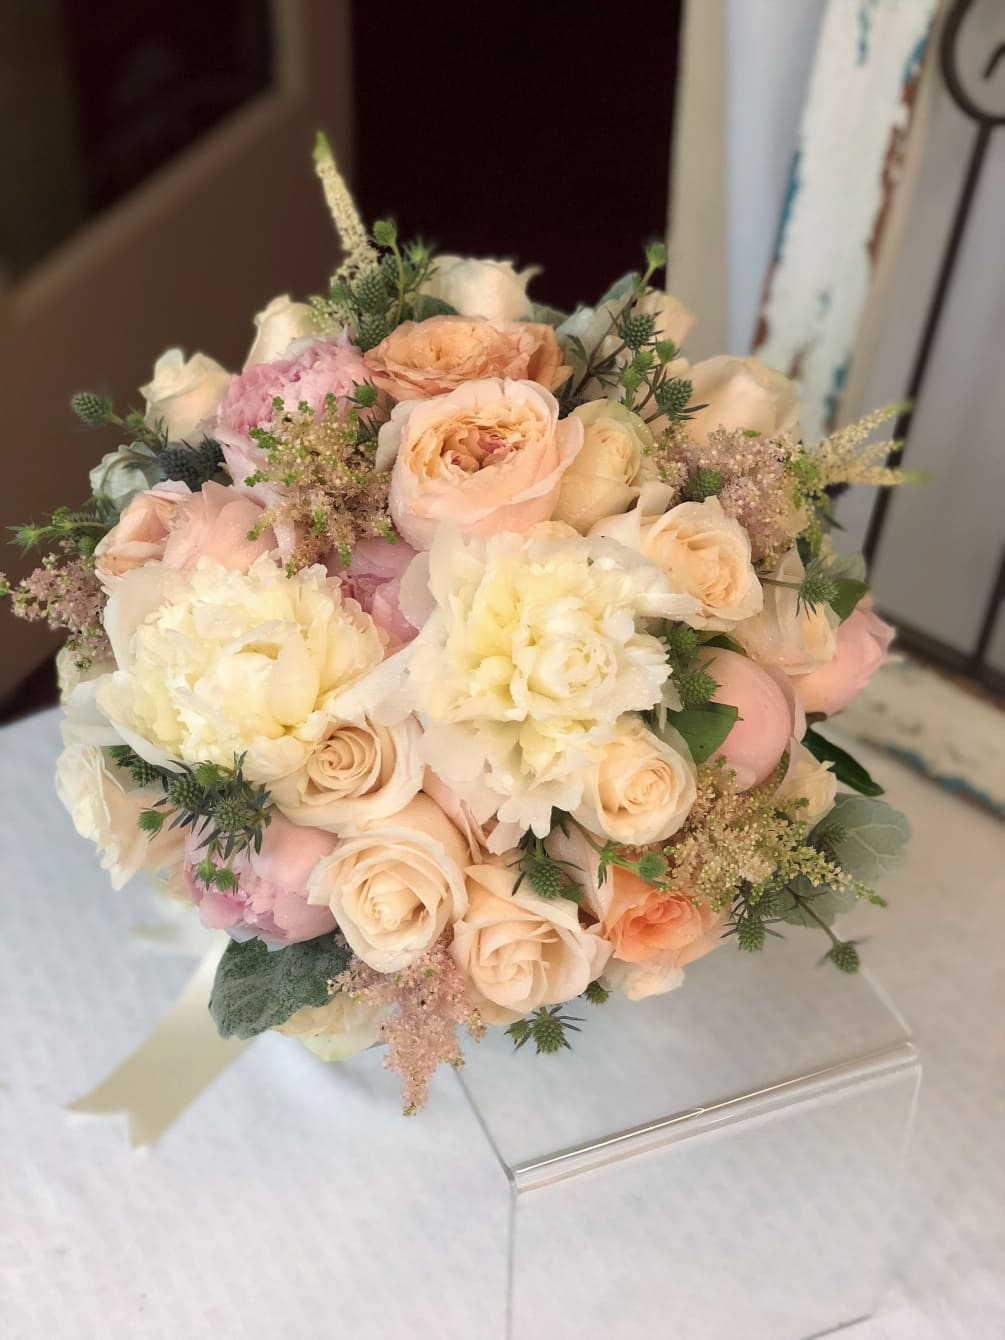 Rose Garden Style Bridal Bouquet Peach Pink White And Ivory By A Garden Floral